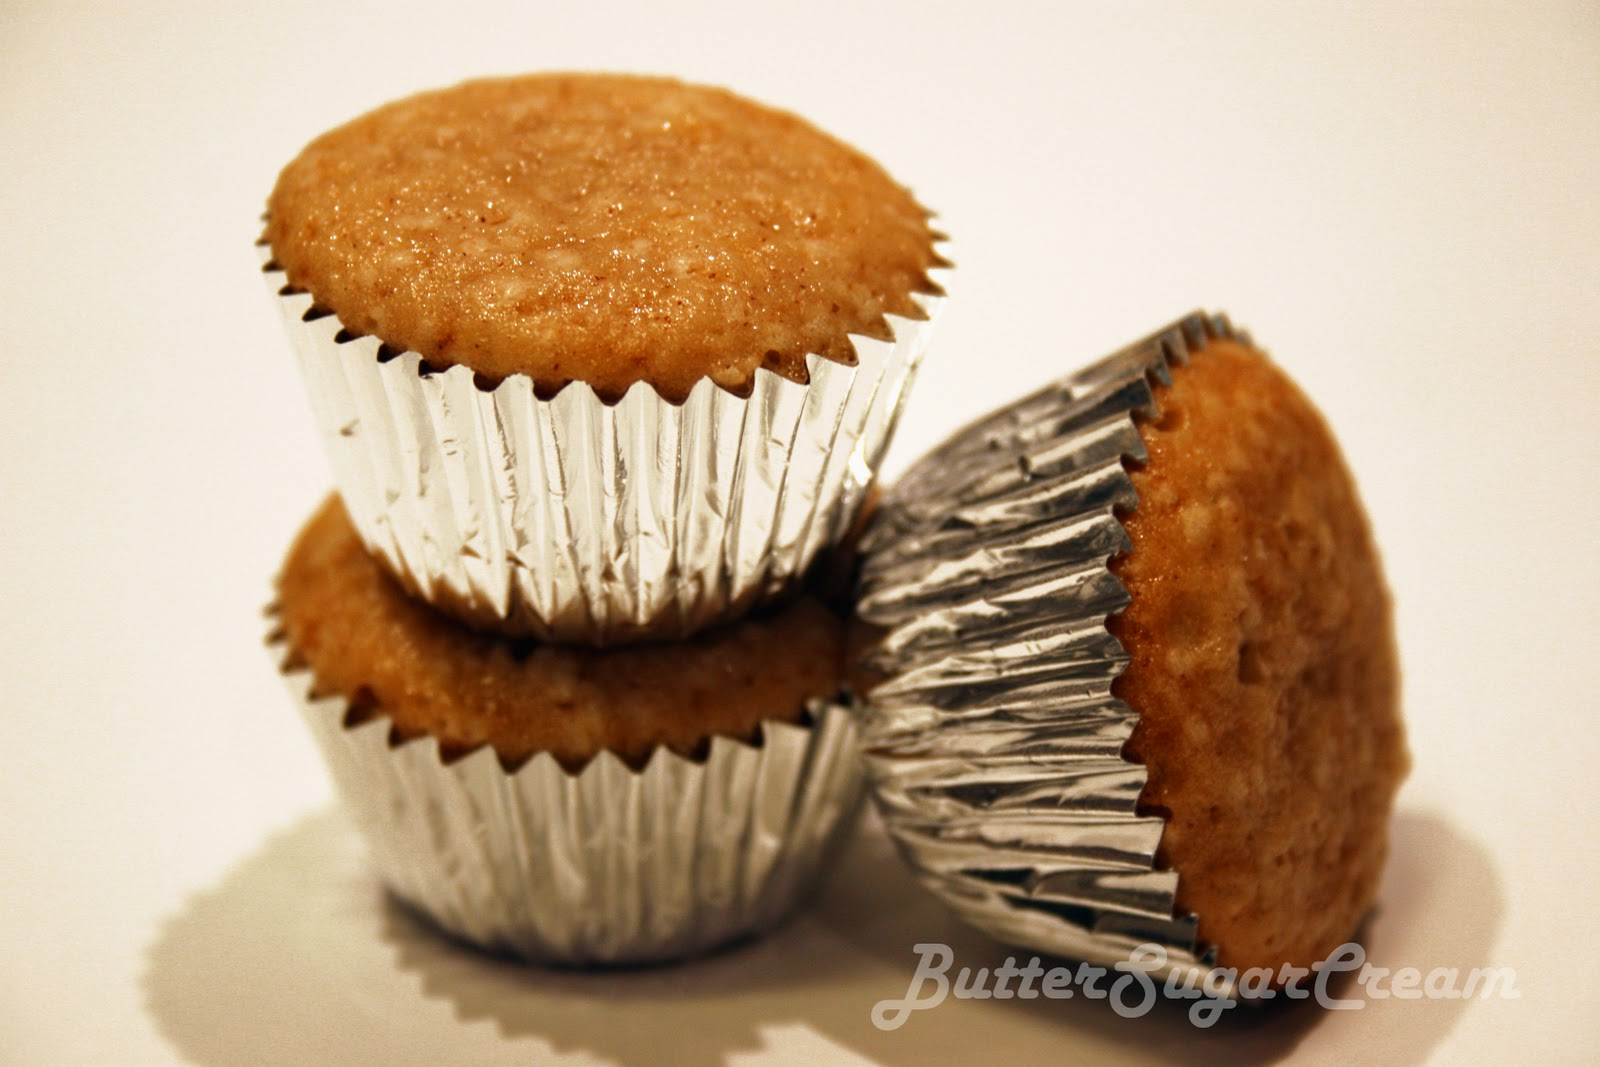 11 Photos of Cupcakes In Foil